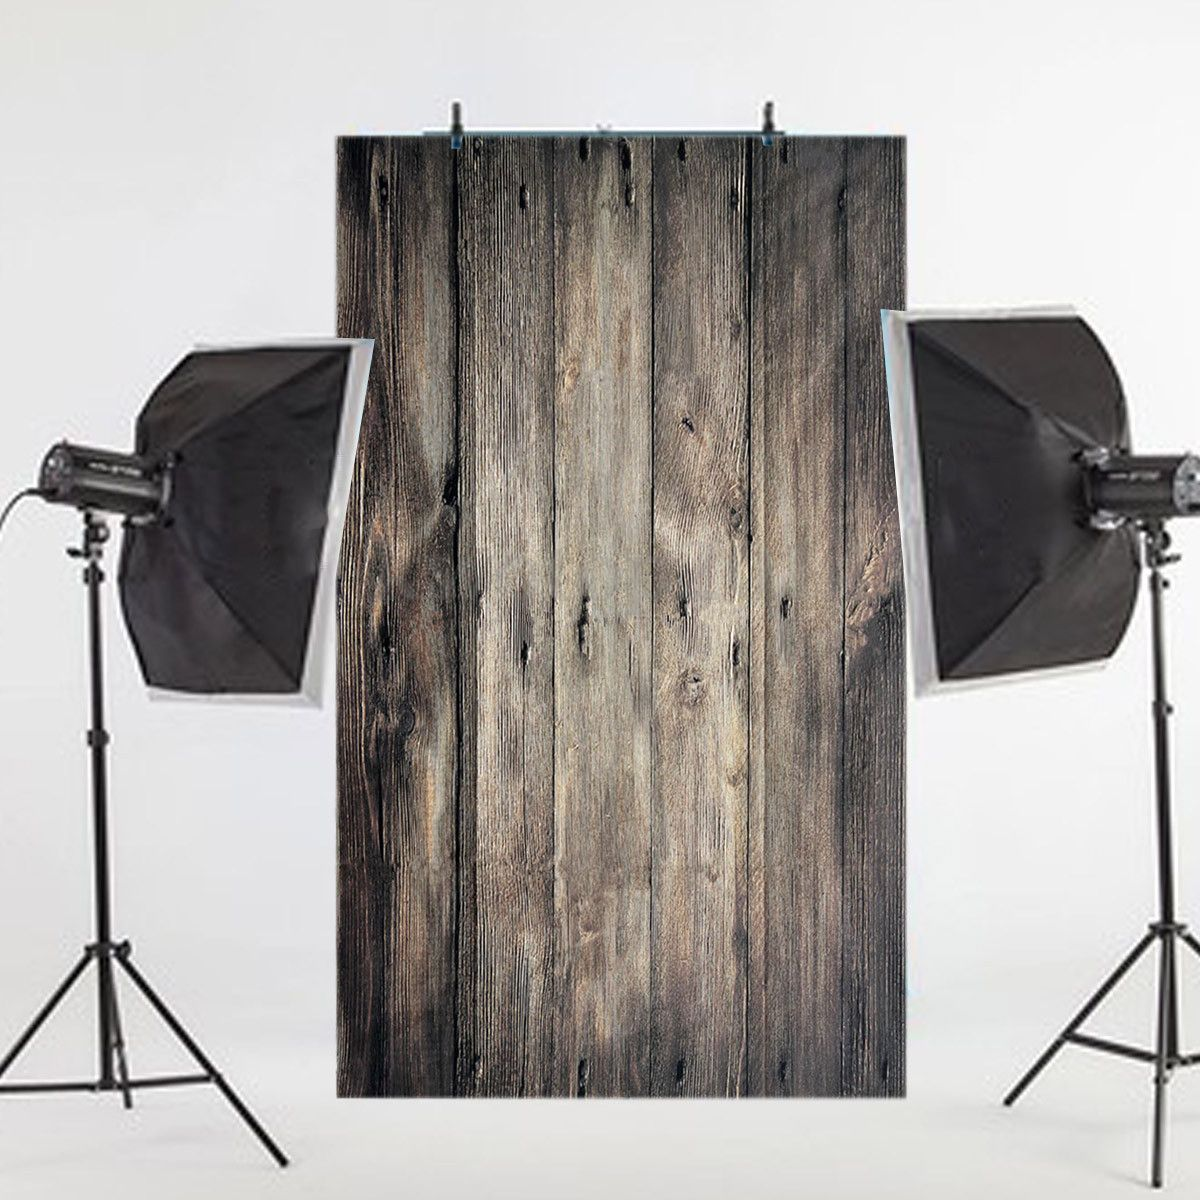 New 3x5FT Vintage Photography Backdrops Wood Vintage Photography Backdrop Backgrounds Studio Wood Background Fotografia 5 6 5ft custom backgrounds photography backdrops cake colorful cute birthday photography backgrounds digital printing backdrops